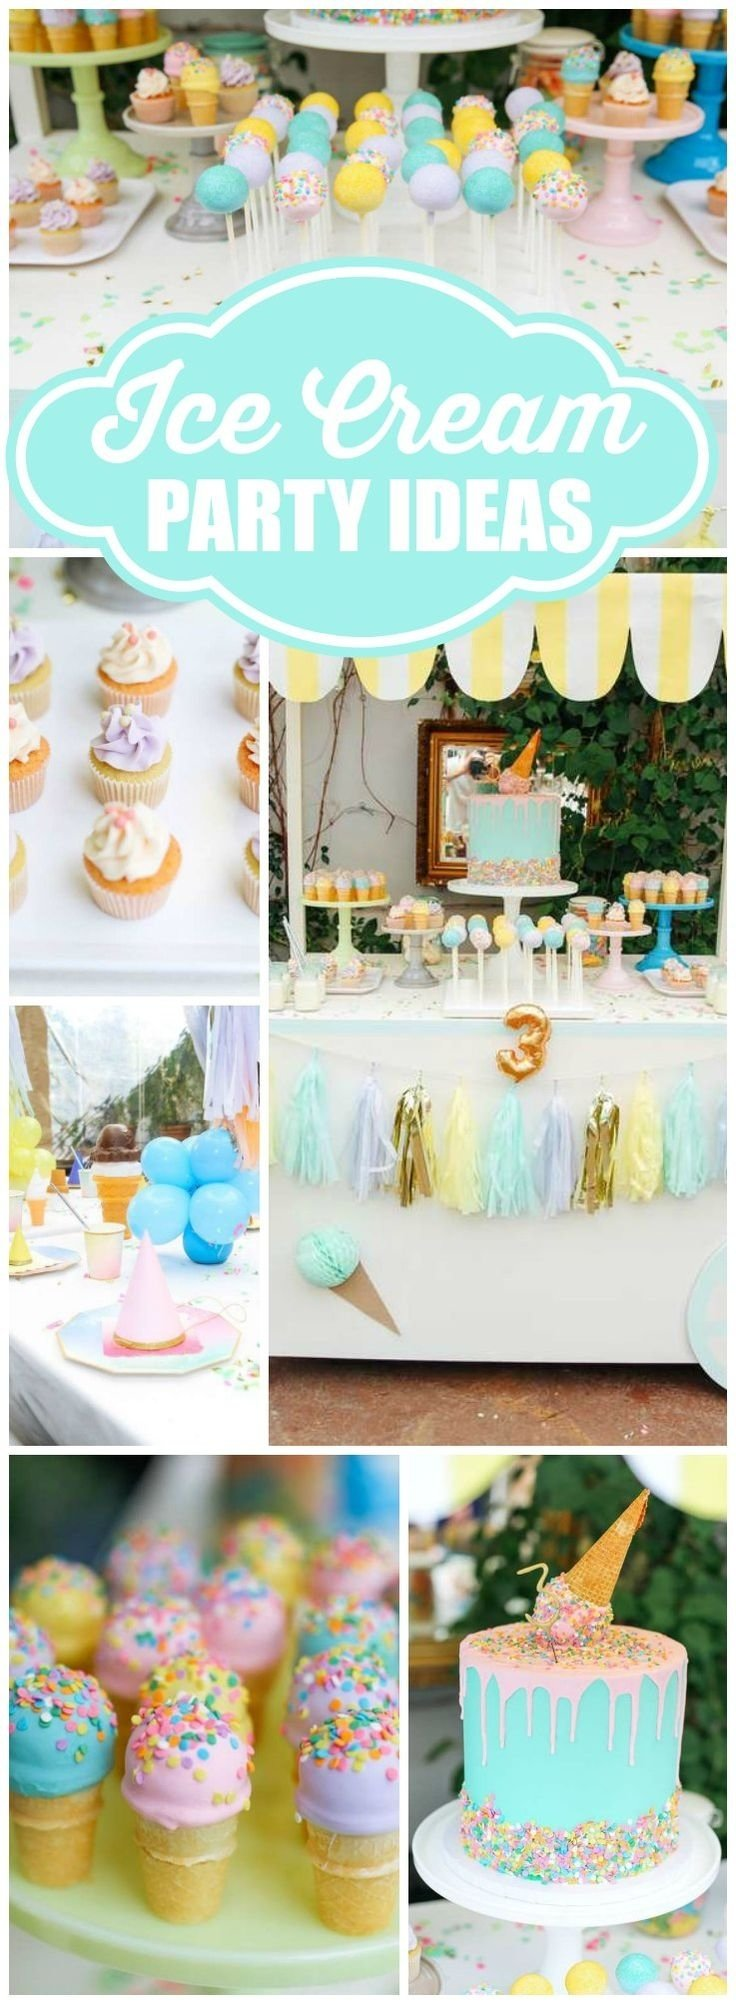 10 Cute Girl Birthday Party Ideas Pinterest 416 best girl birthday party ideas images on pinterest birthday 10